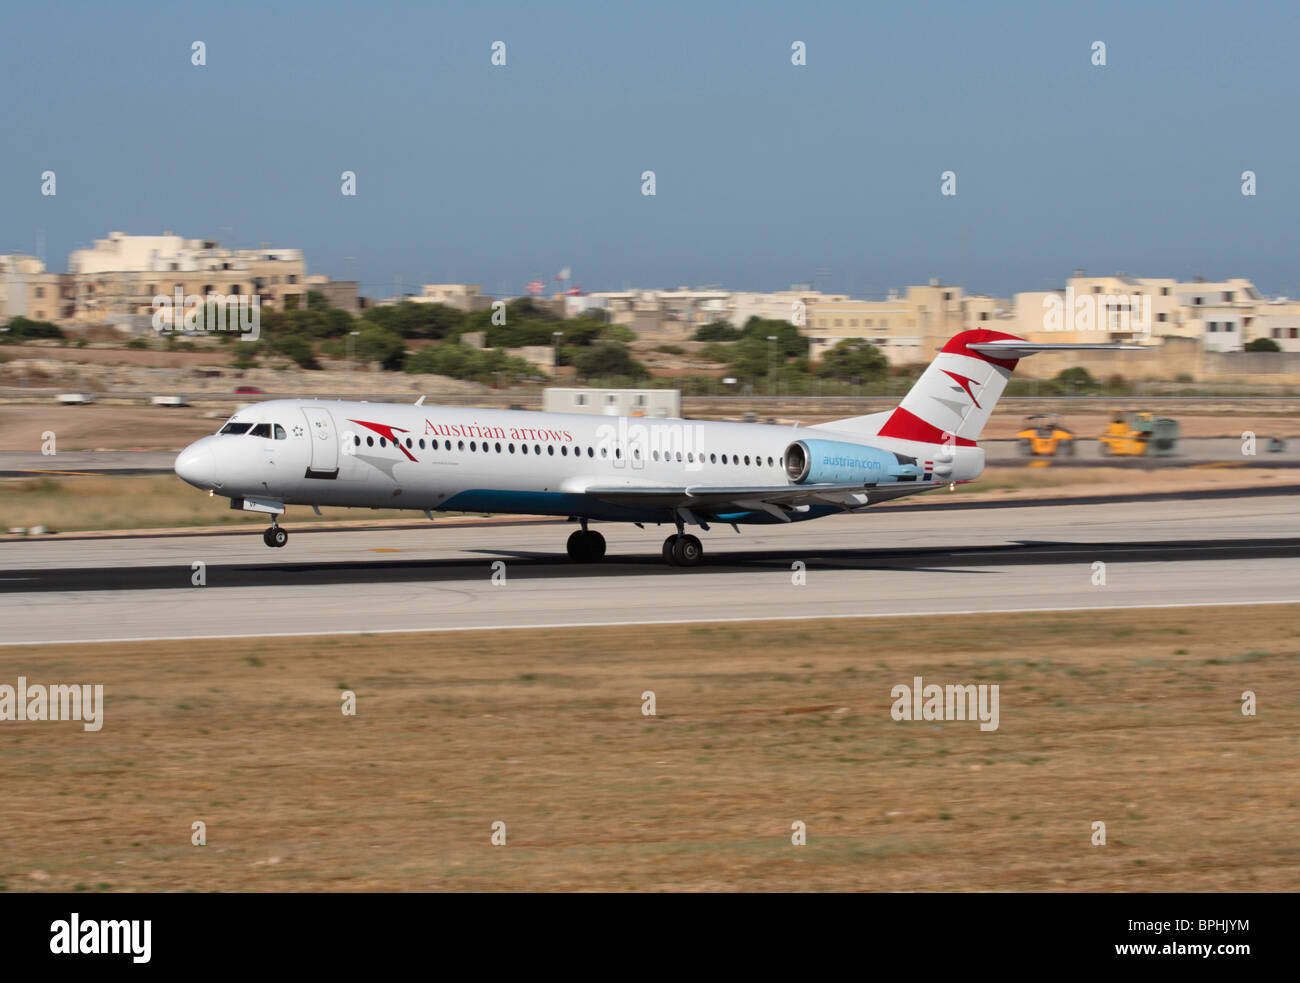 Austrian Arrows Fokker F100 passenger jet plane on the runway at Malta International Airport during takeoff - Stock Image